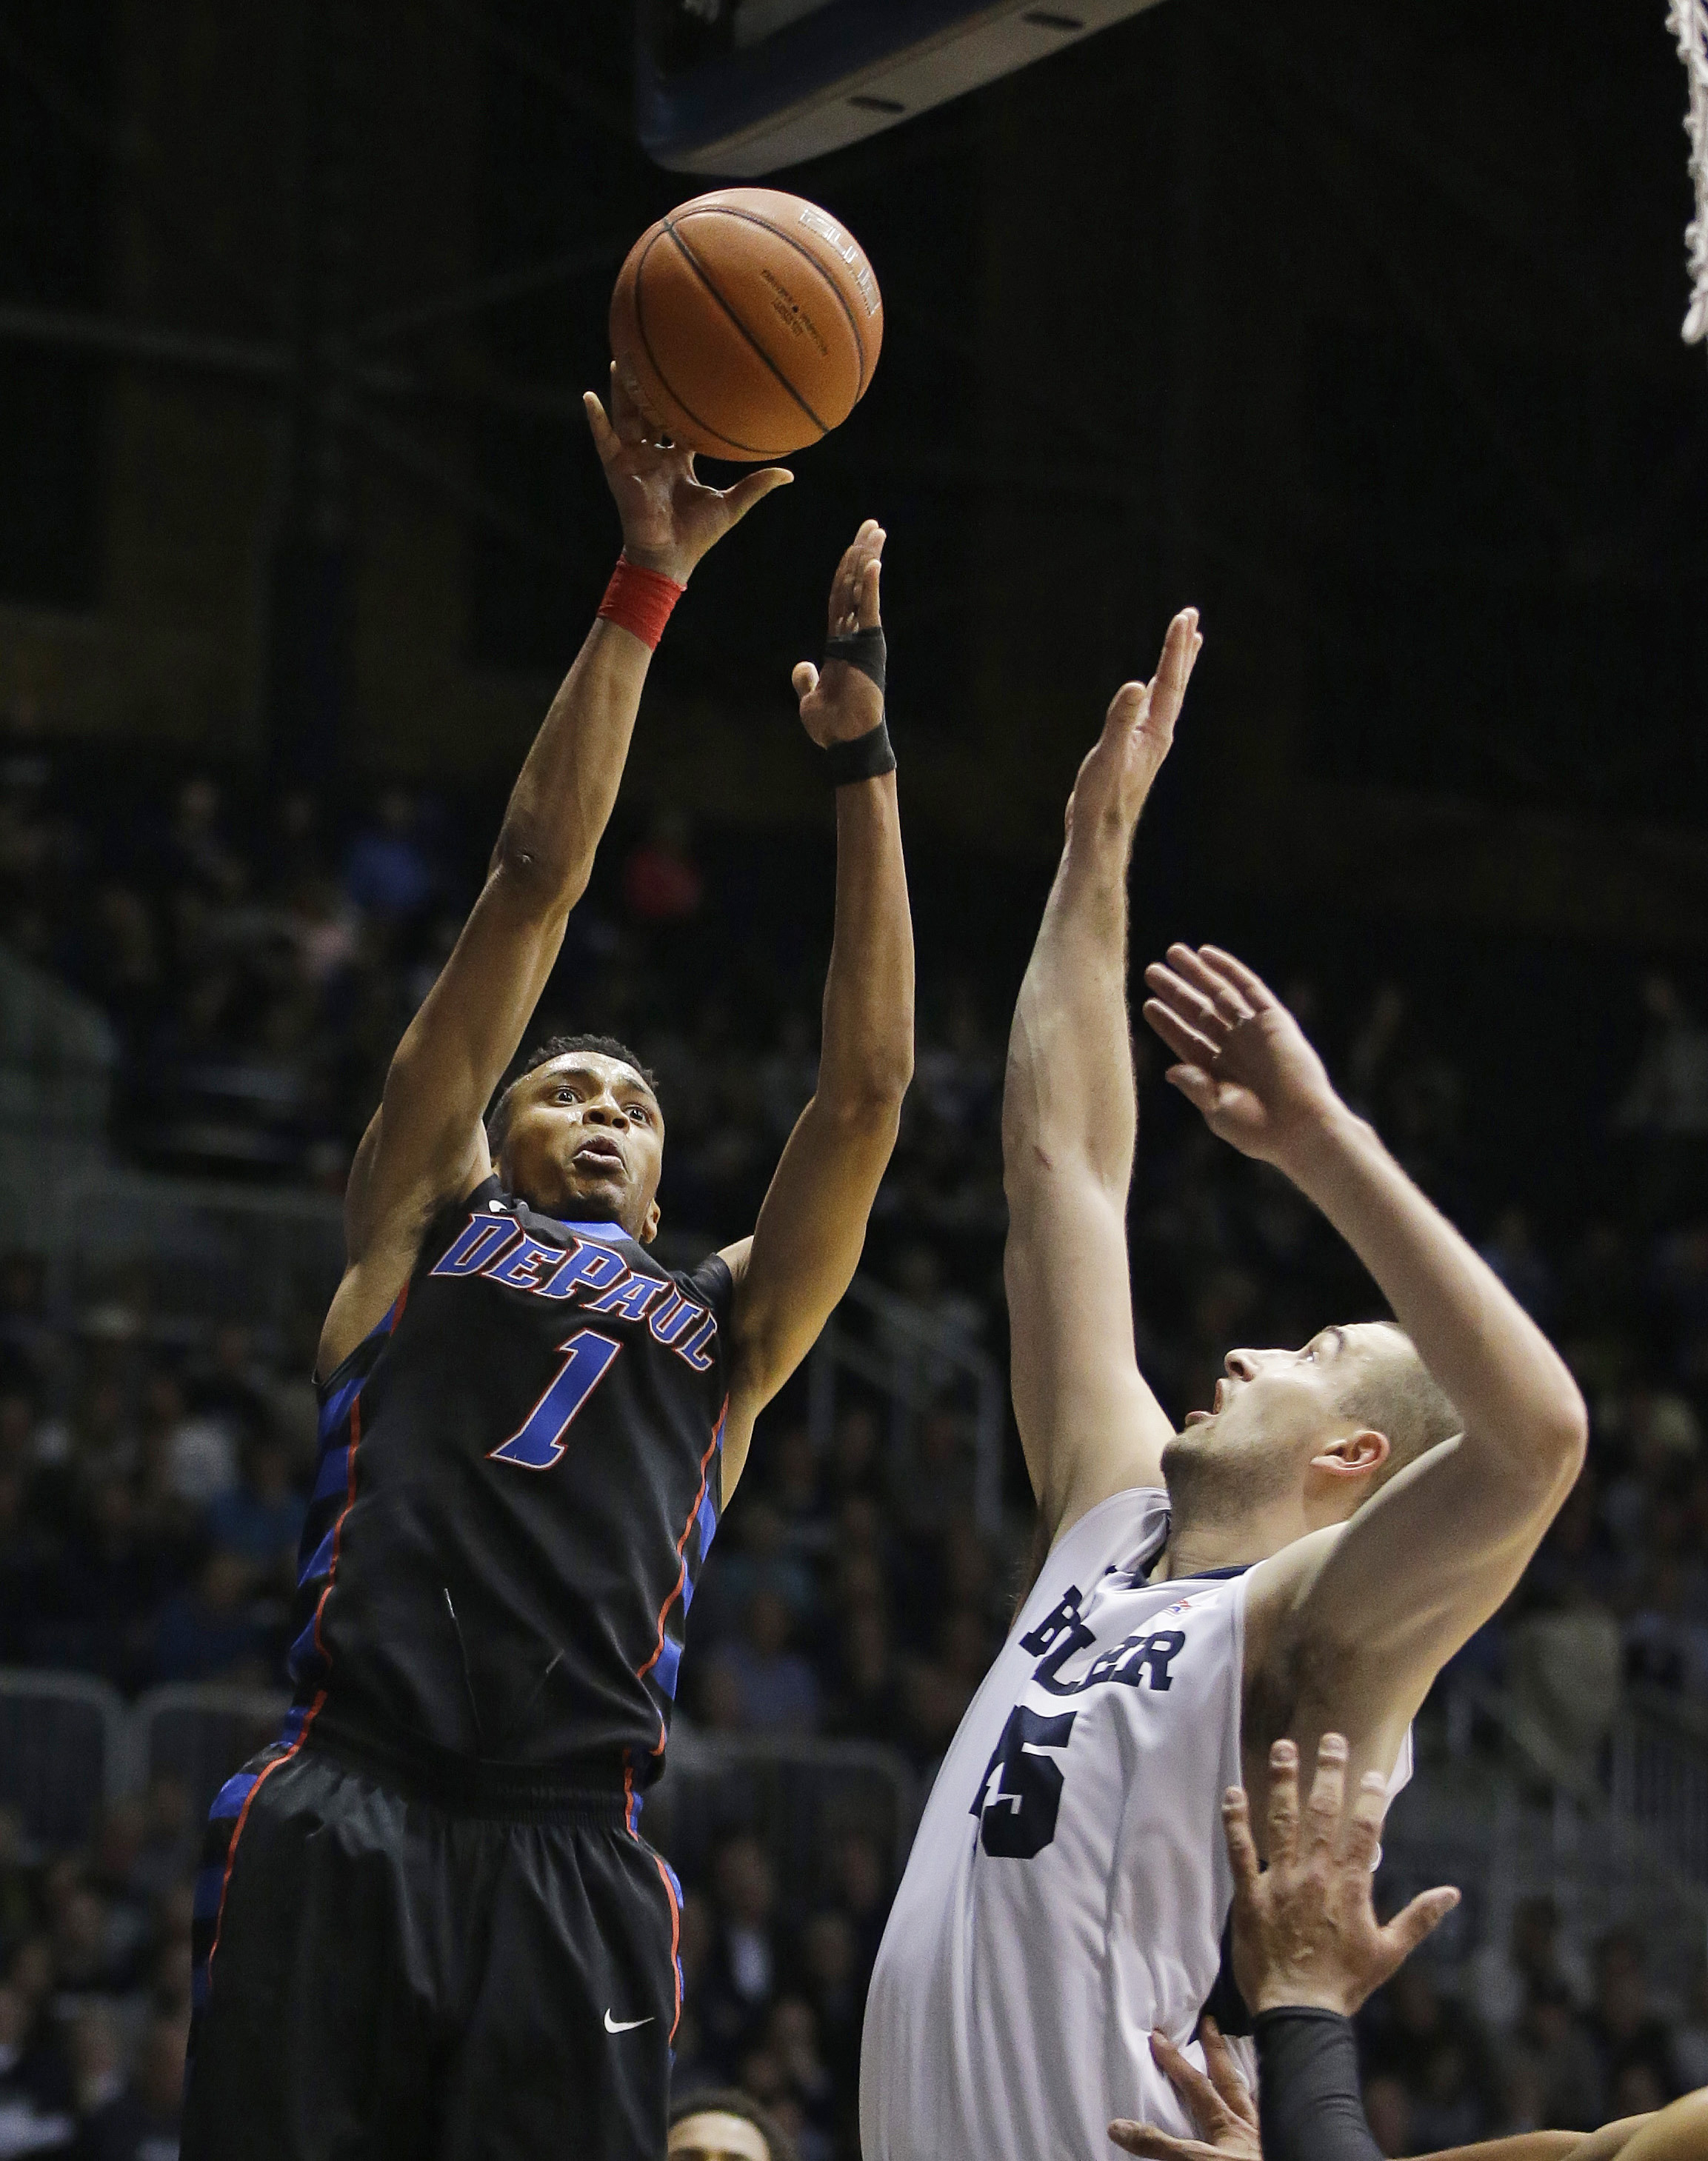 DePaul's Darrick Wood (1) shoots over Butler's Andrew Chrabascz (45) during the second half of an NCAA college basketball game Wednesday, Jan. 27, 2016, in Indianapolis. Butler won 67-53. (AP Photo/Darron Cummings)